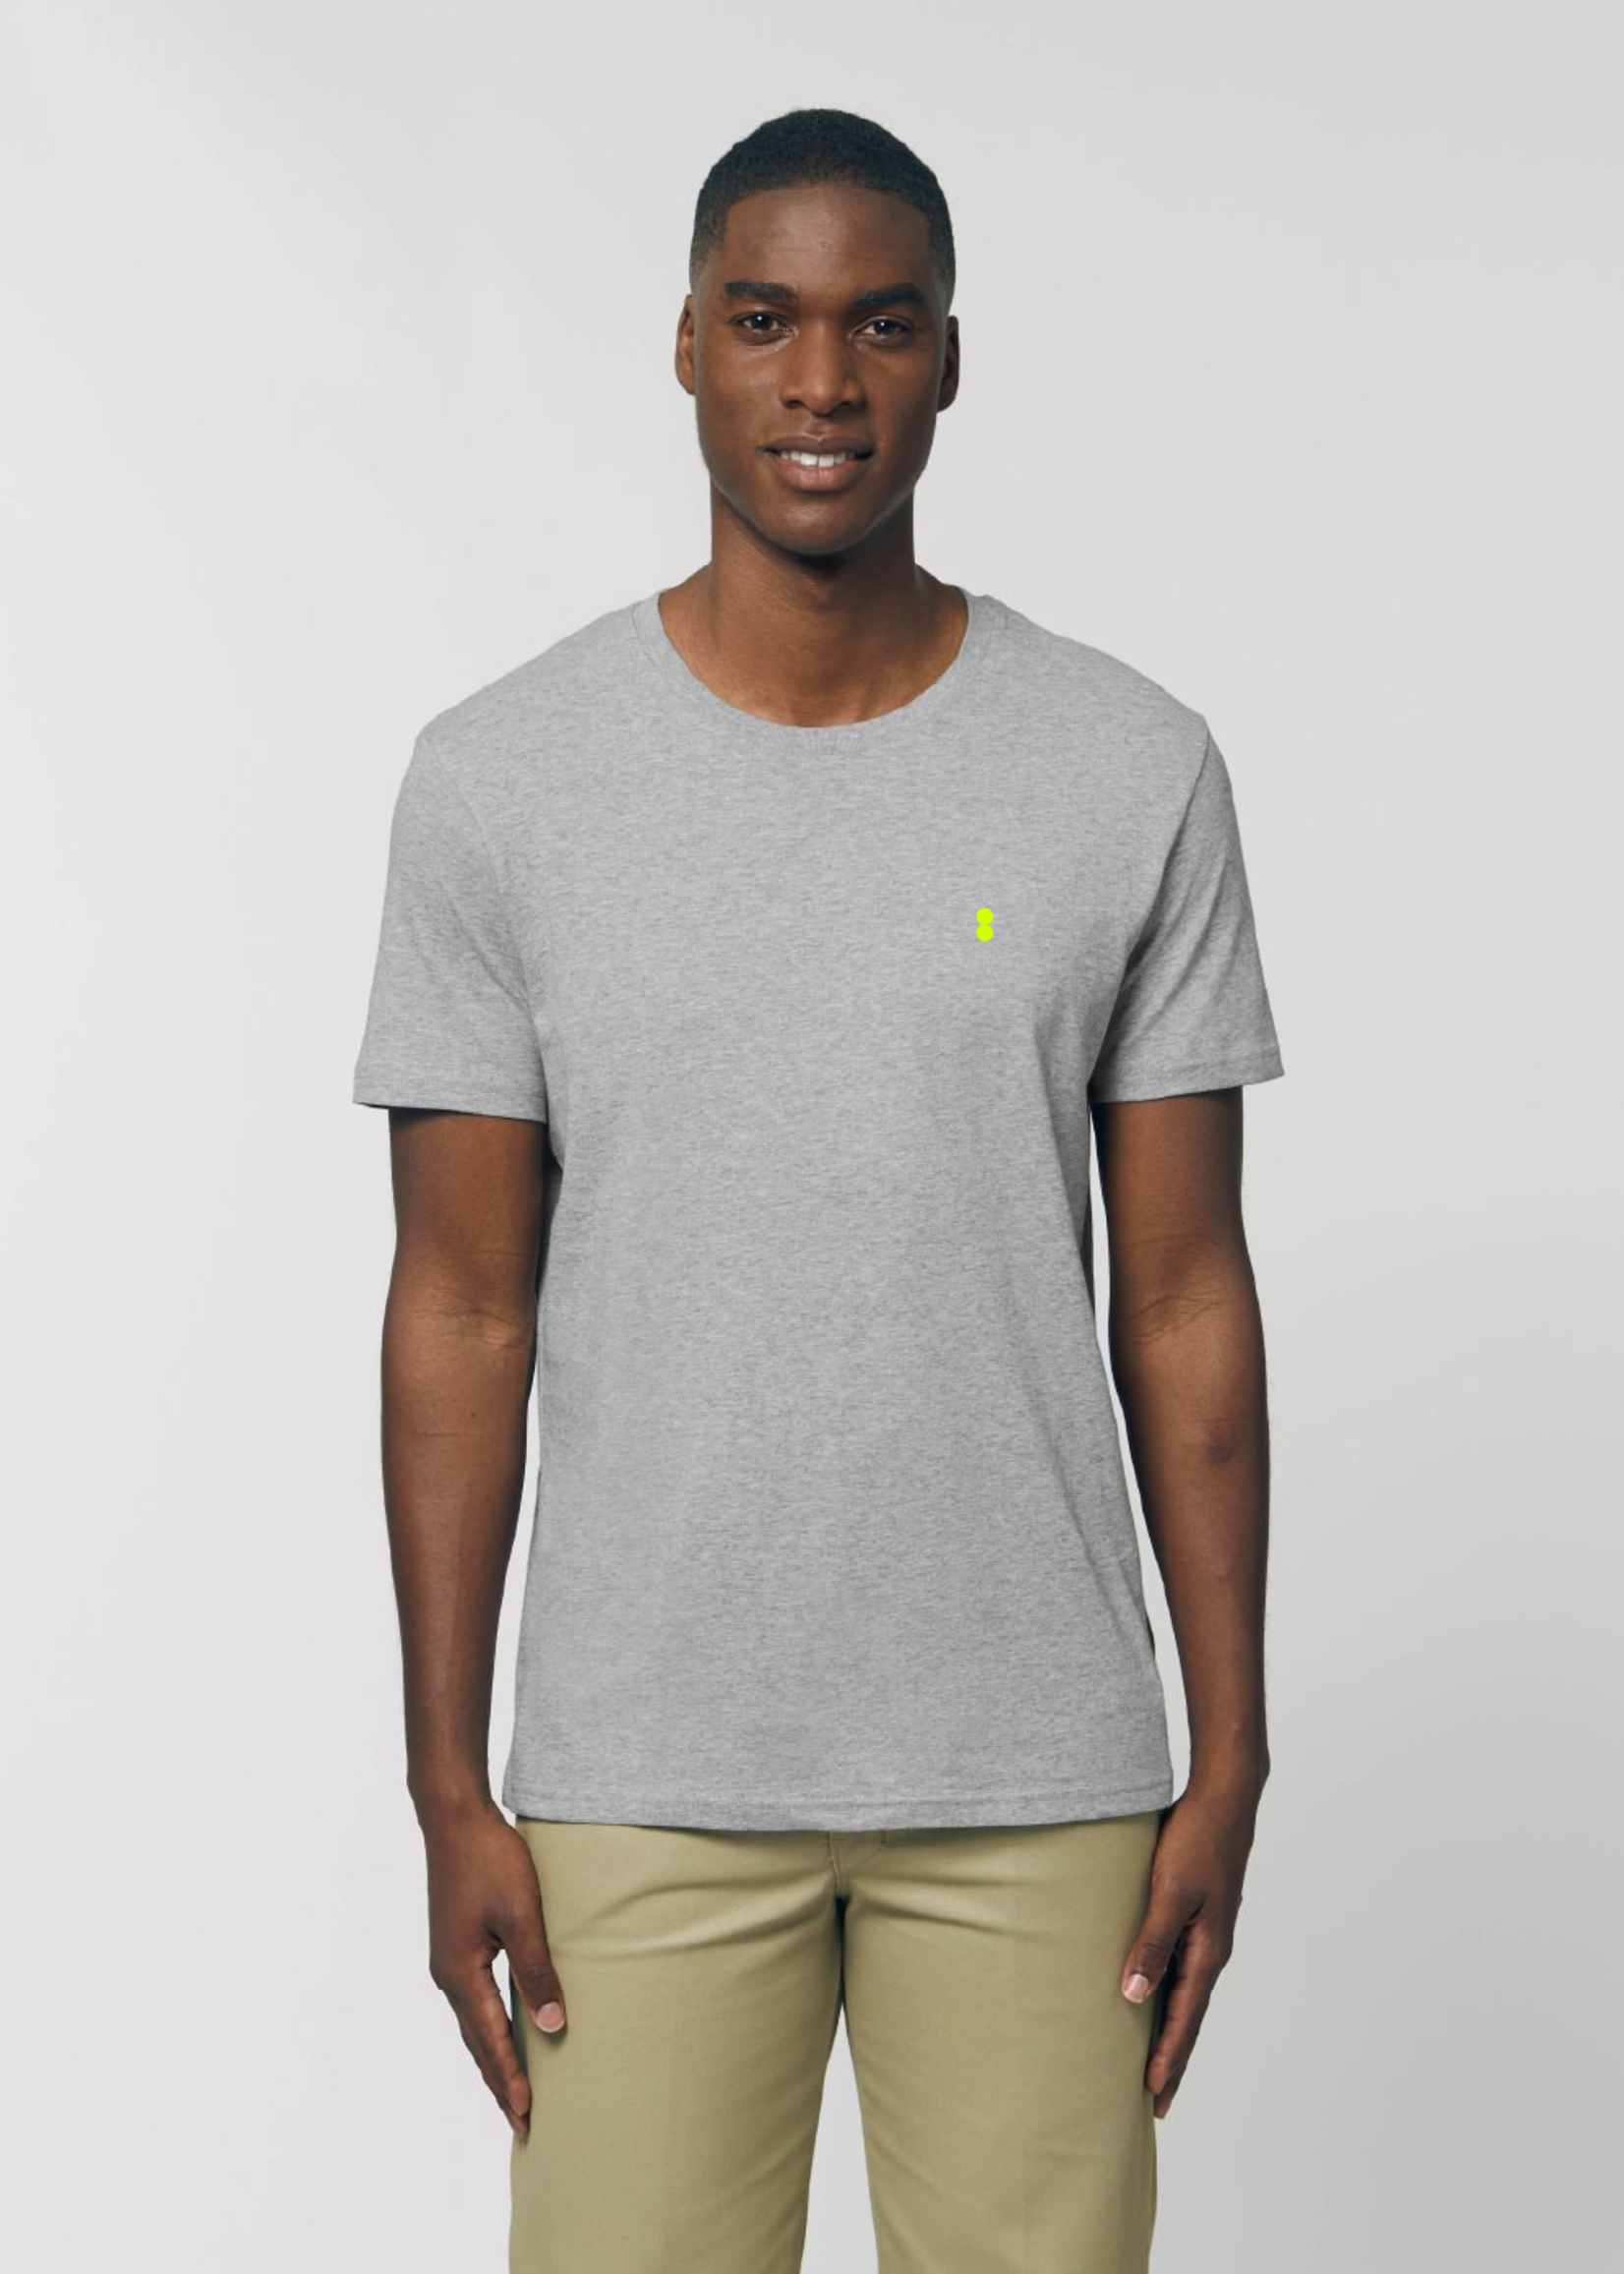 Bataia T-Shirt - All in All the time - Grey/Fluo